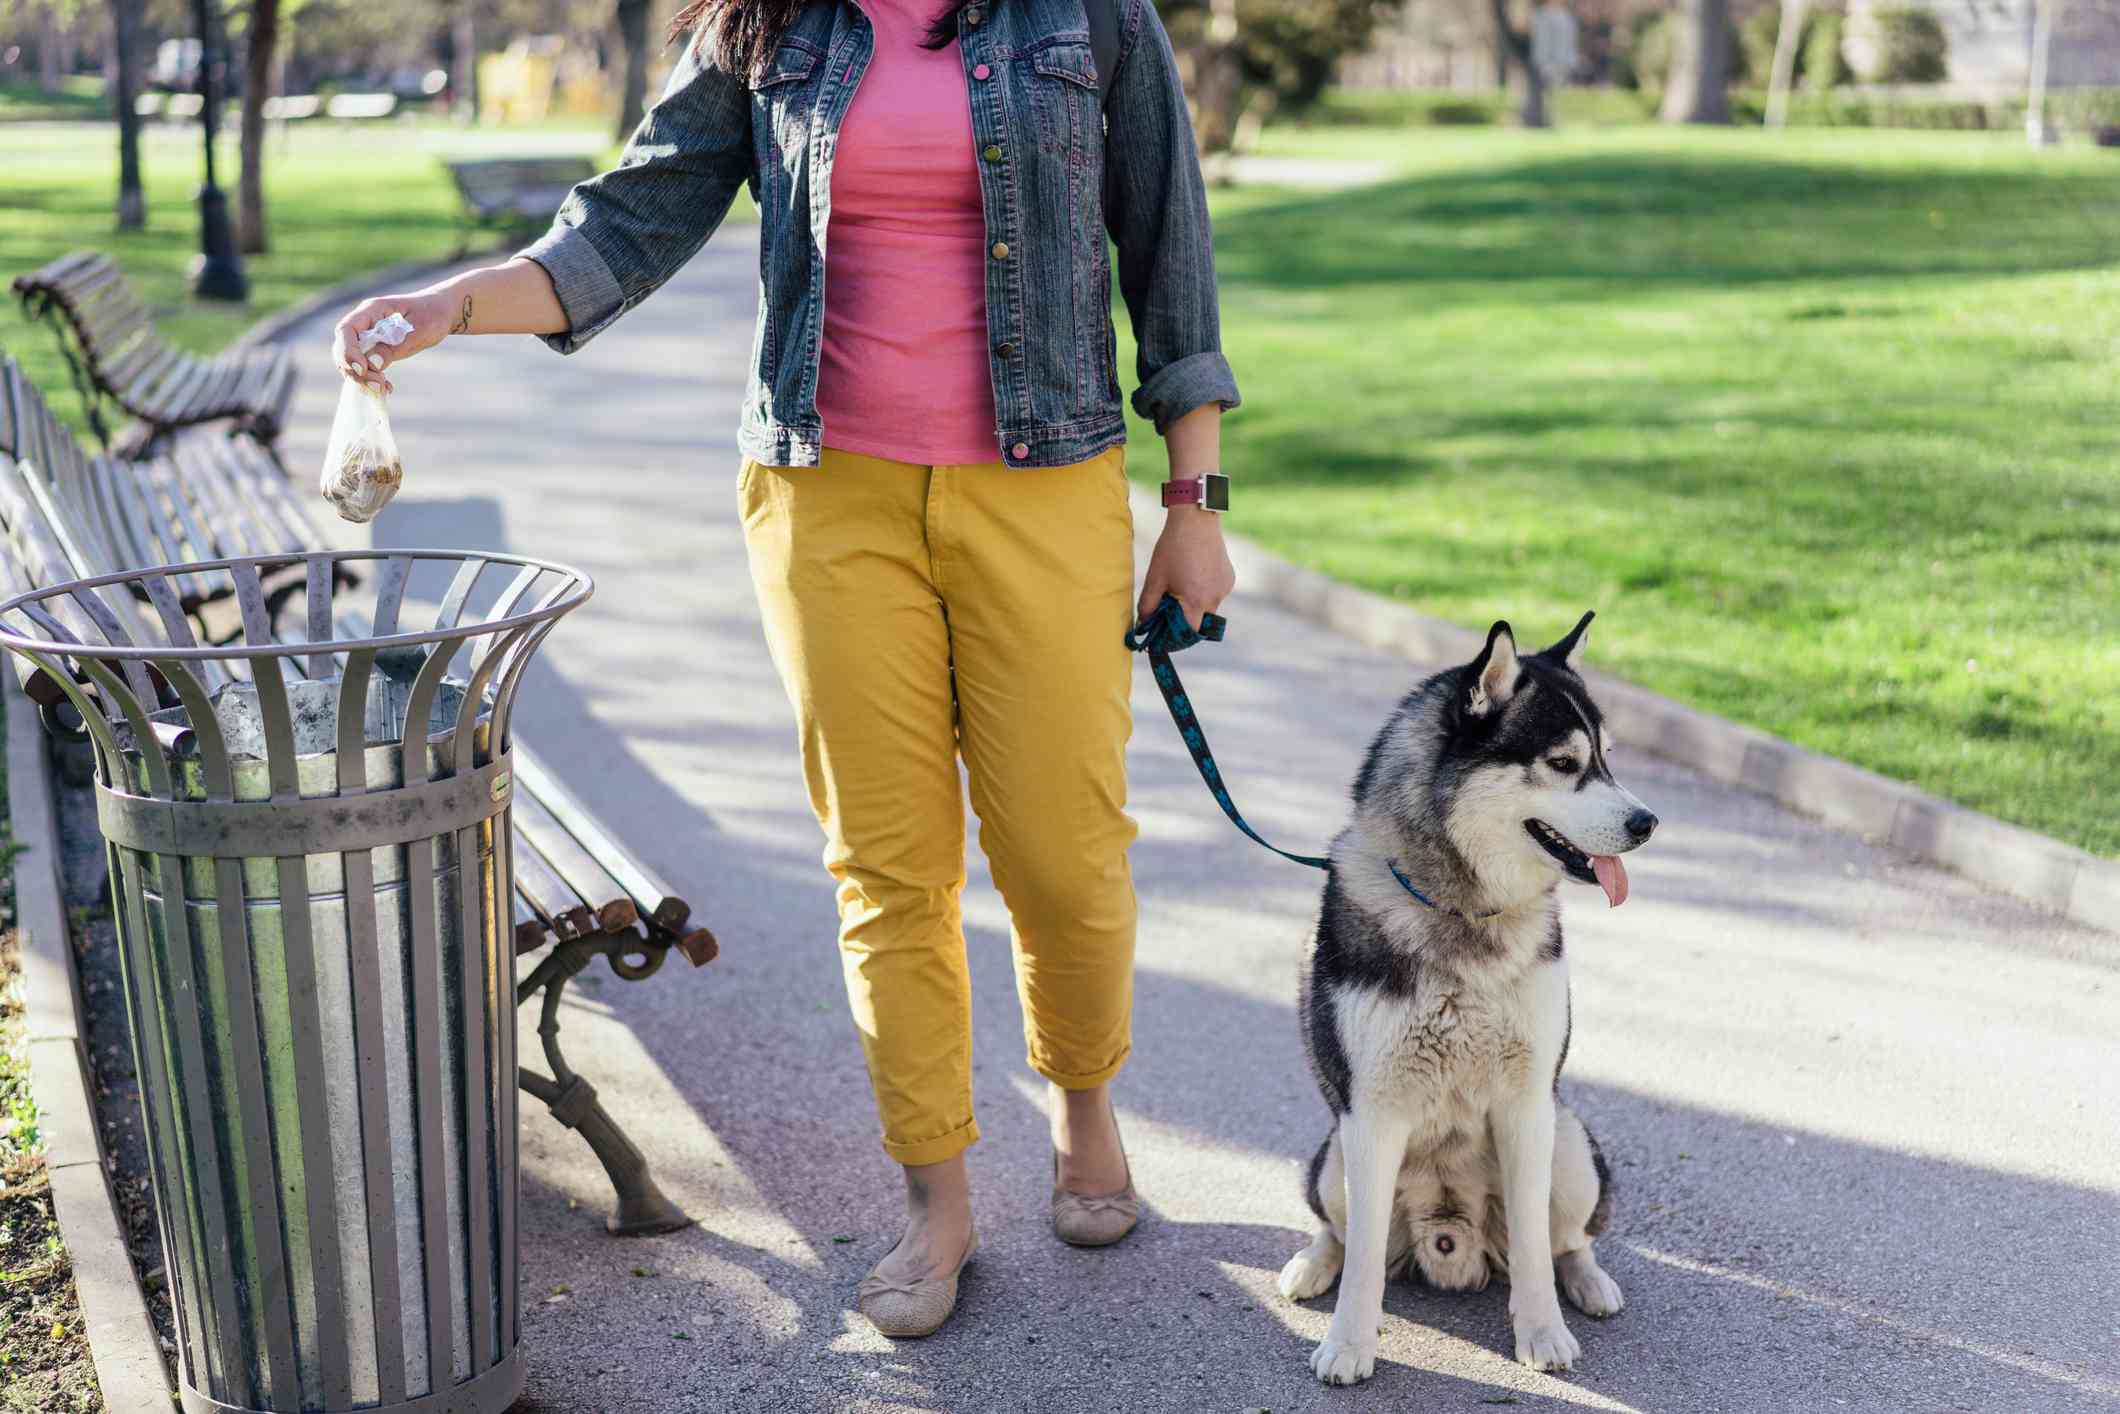 Person with dog, throwing a bag of poop into trash